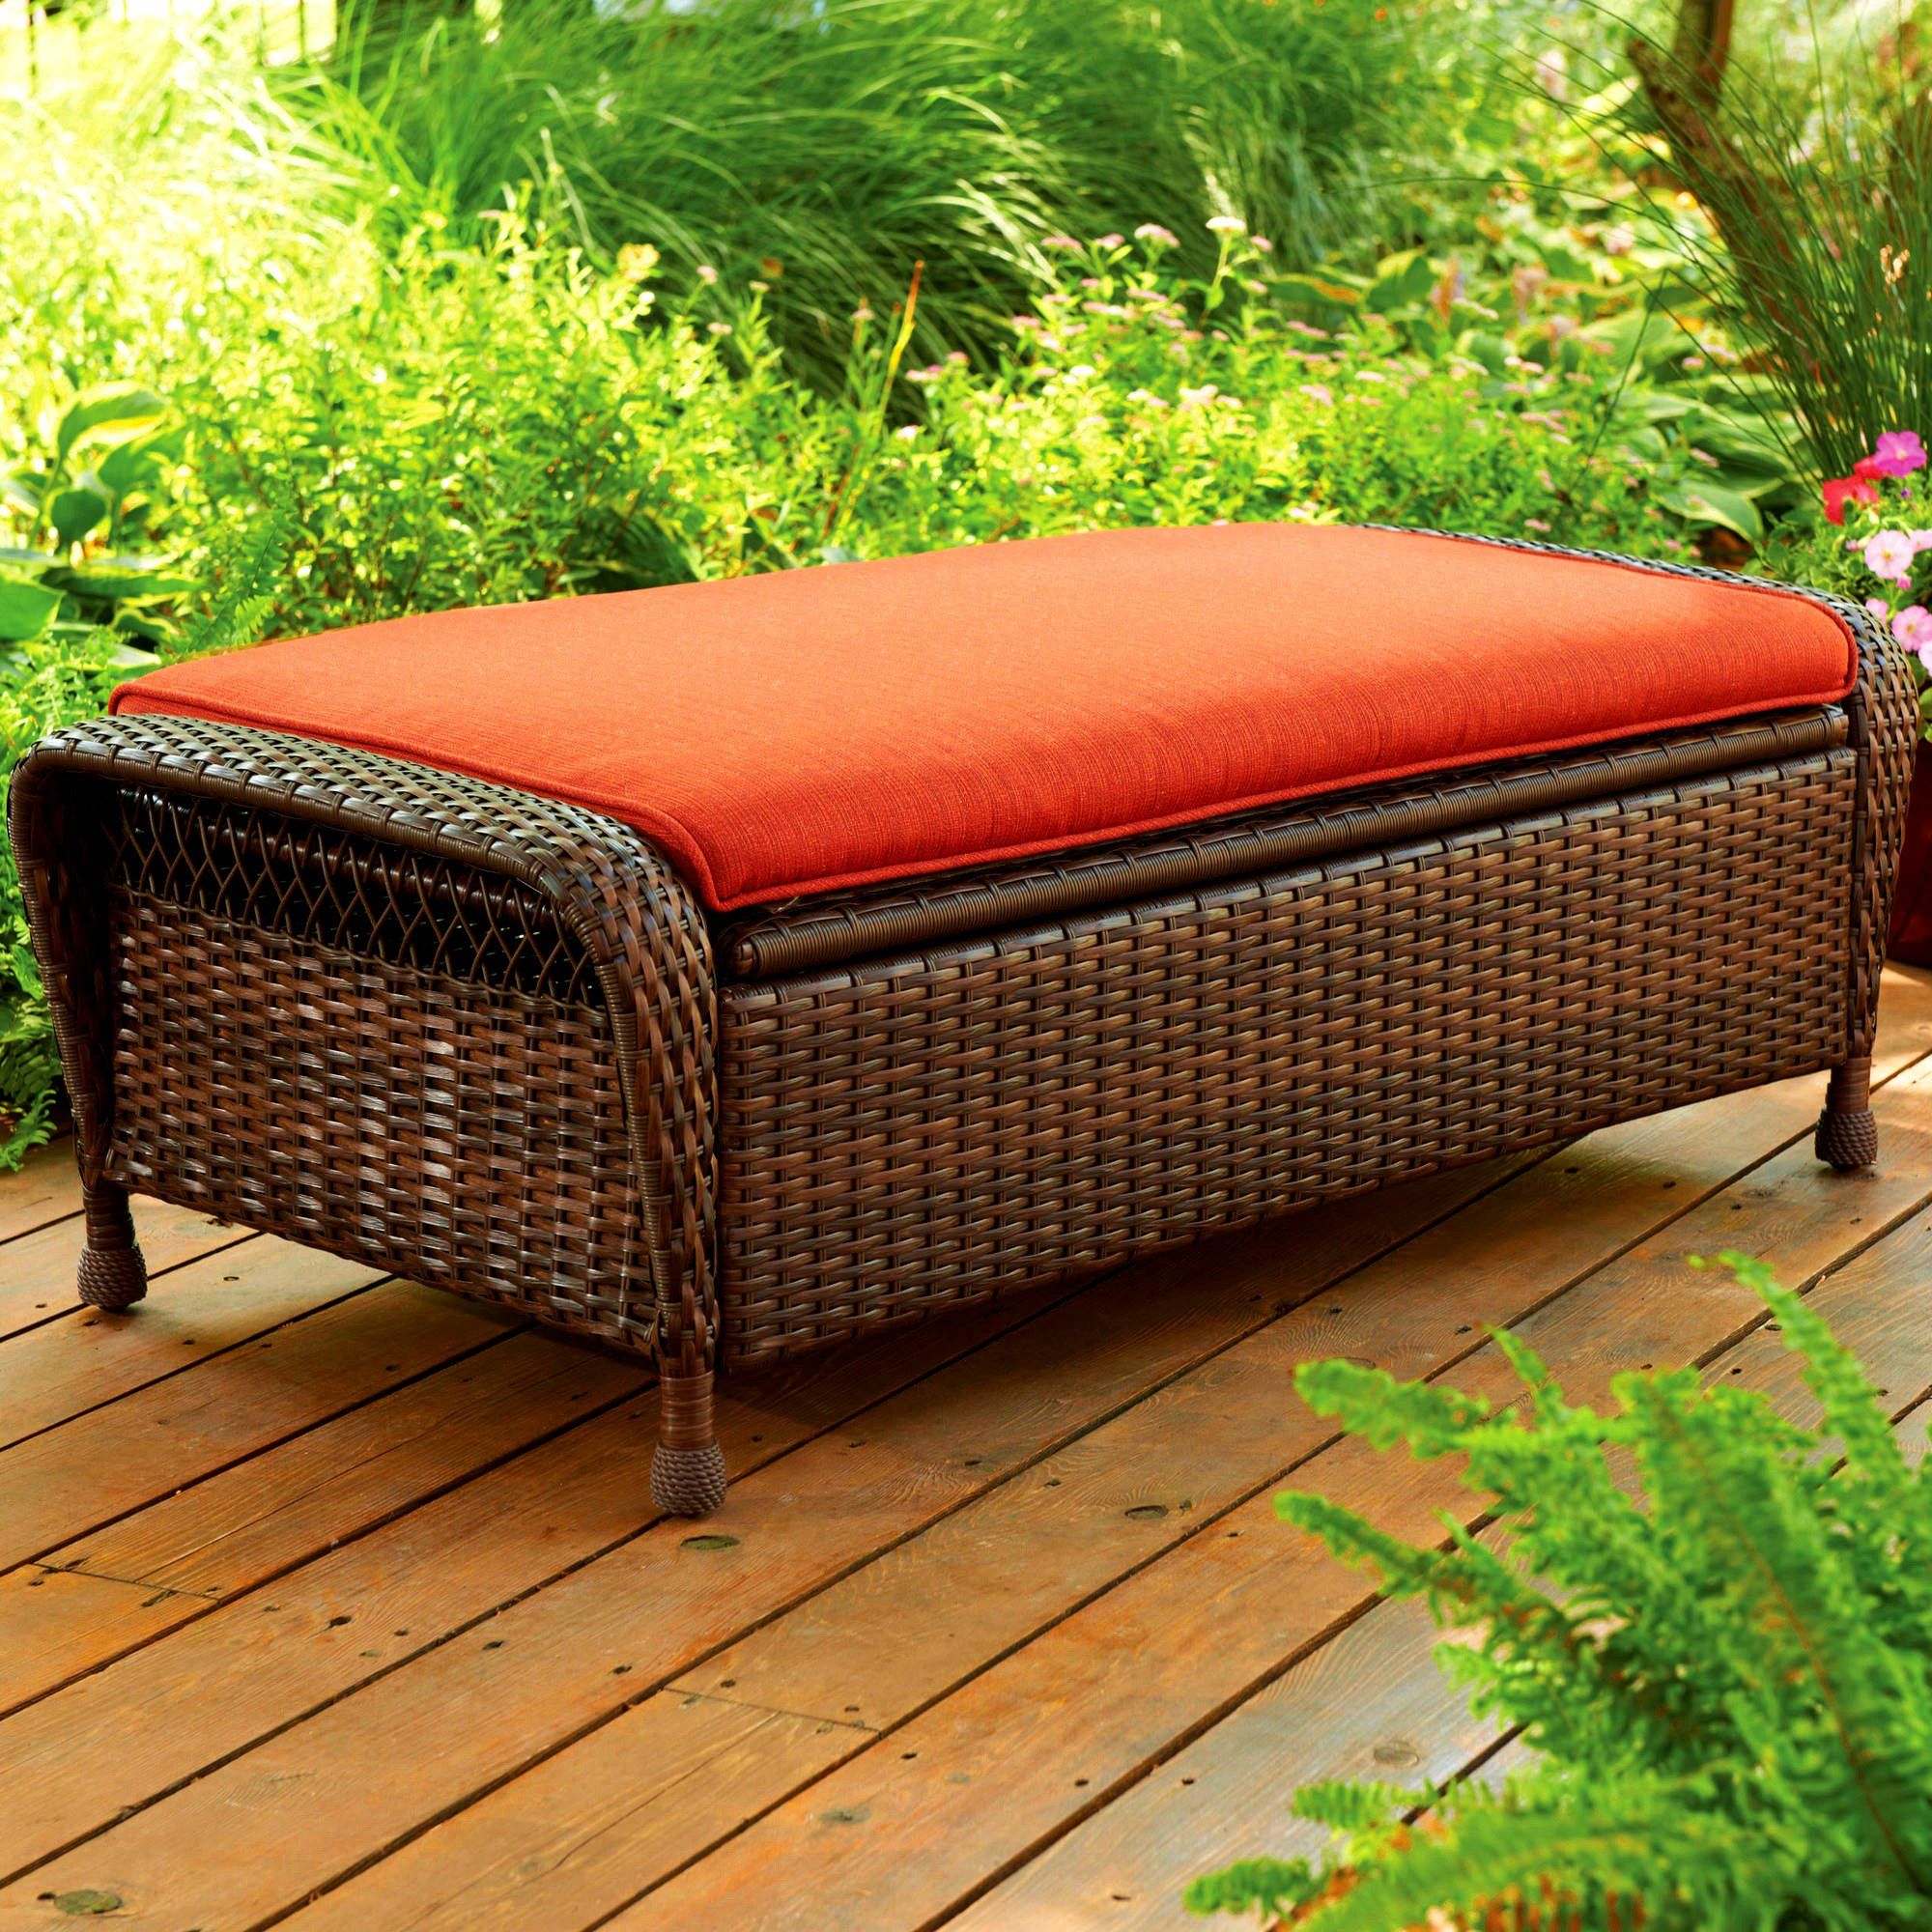 Outdoor Storage Ottoman Brown Wicker Padded Cushion Pillow in Orange Hidden Storage Open Lid Seat Patio Bench All Weather Furniture & eBook by Easy&FunDeals